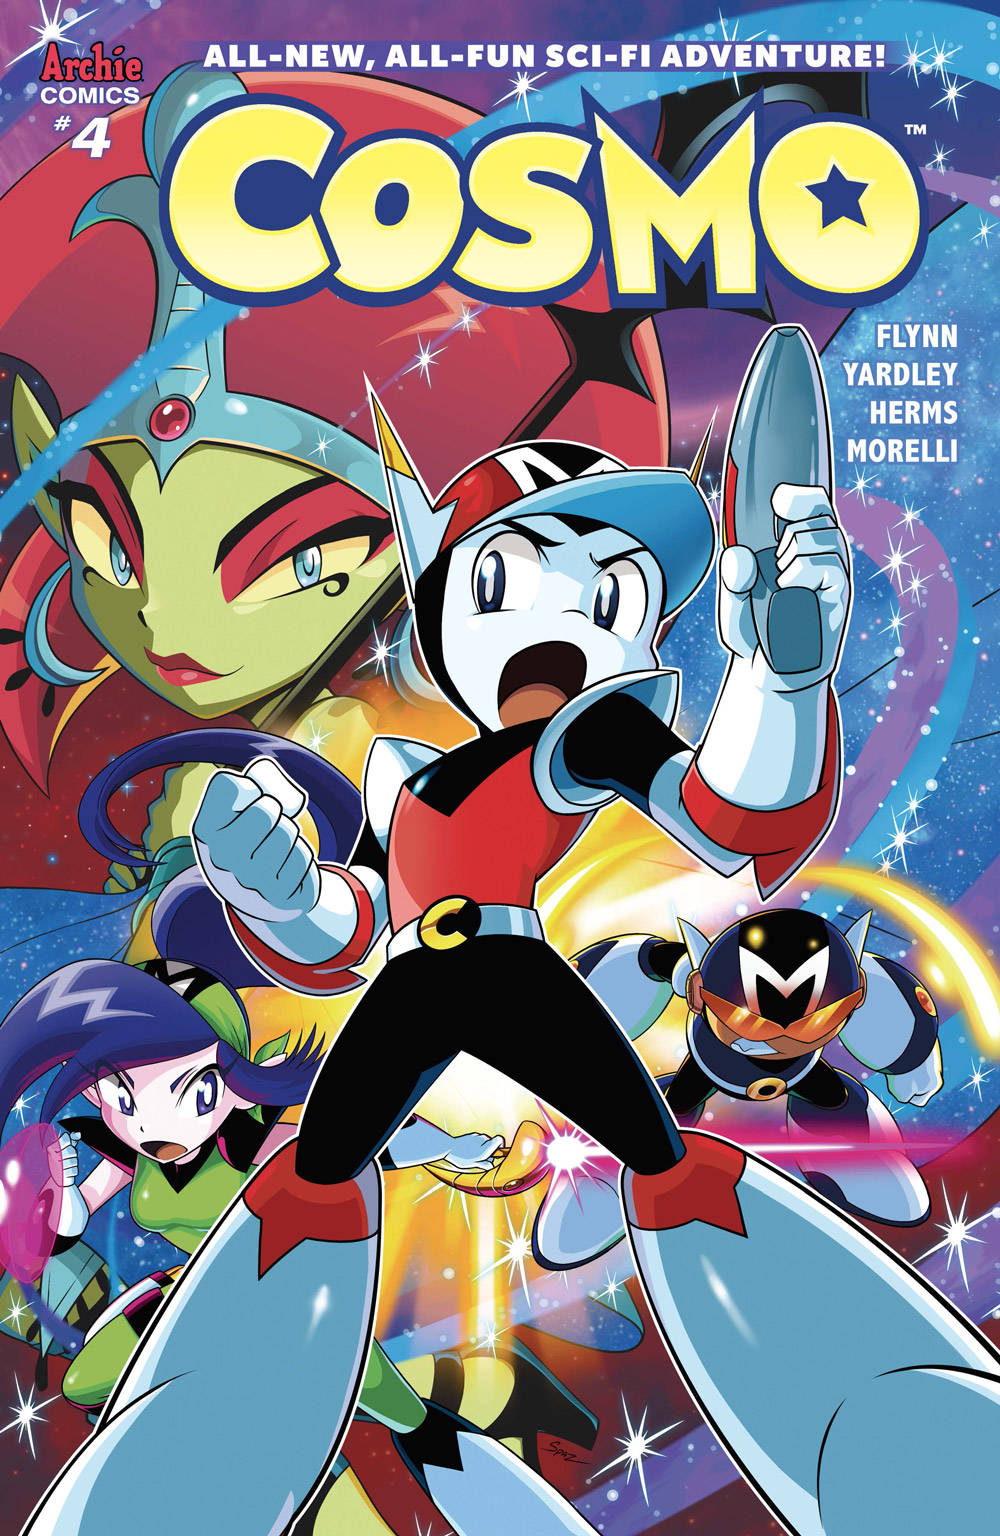 Cosmo the Merry Martian Returns from the Silver Age in